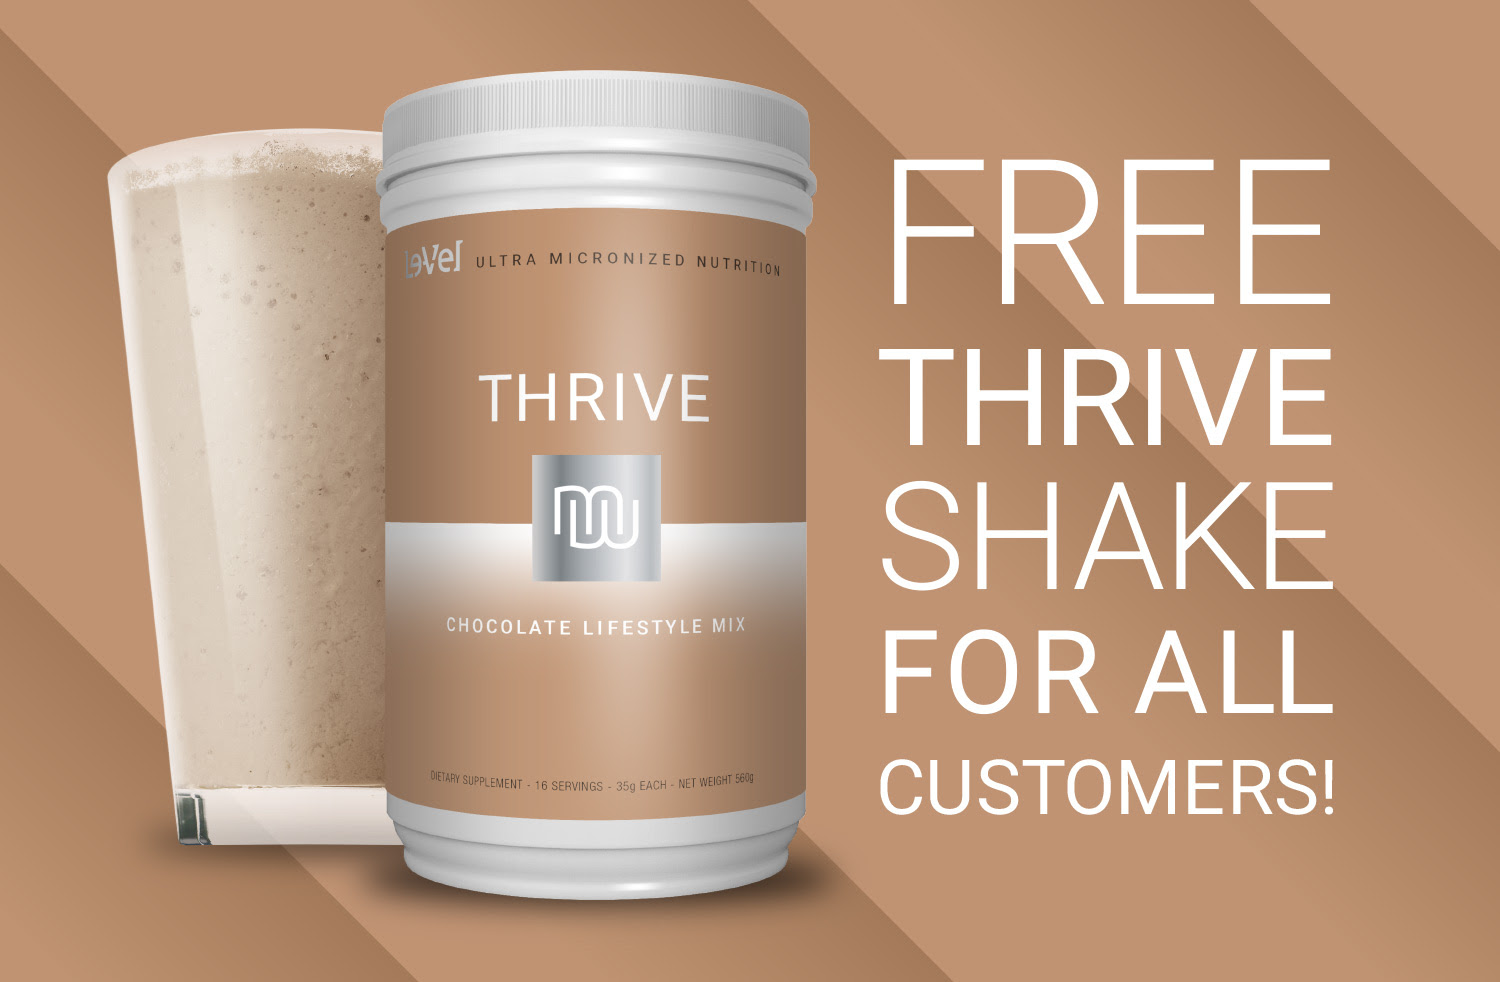 FREE THRIVE SHAKE for ALL CUSTOMERS